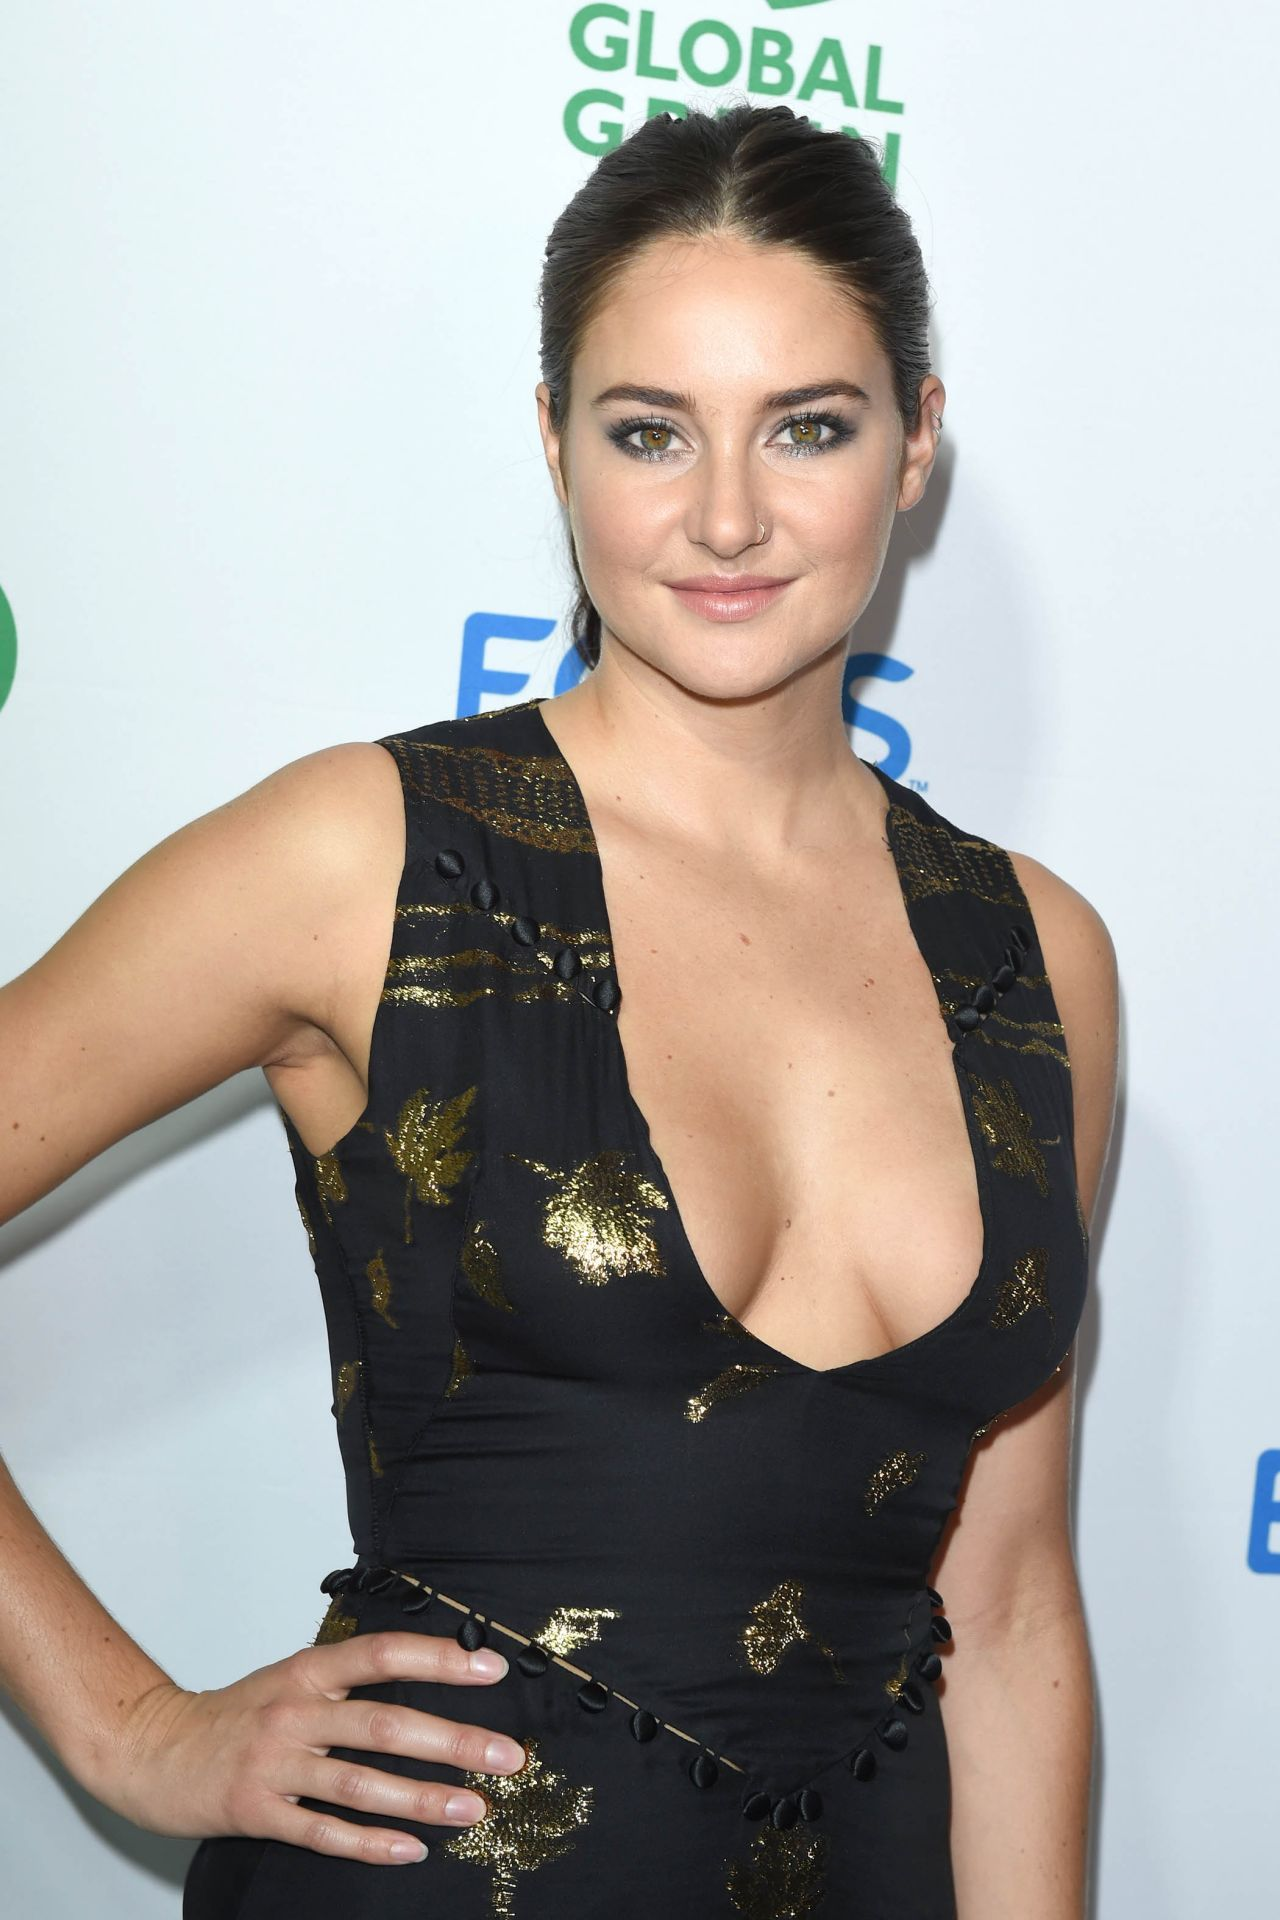 Discussion on this topic: Angie varona sexy pics 2, shailene-woodley-sexy-29-photos/